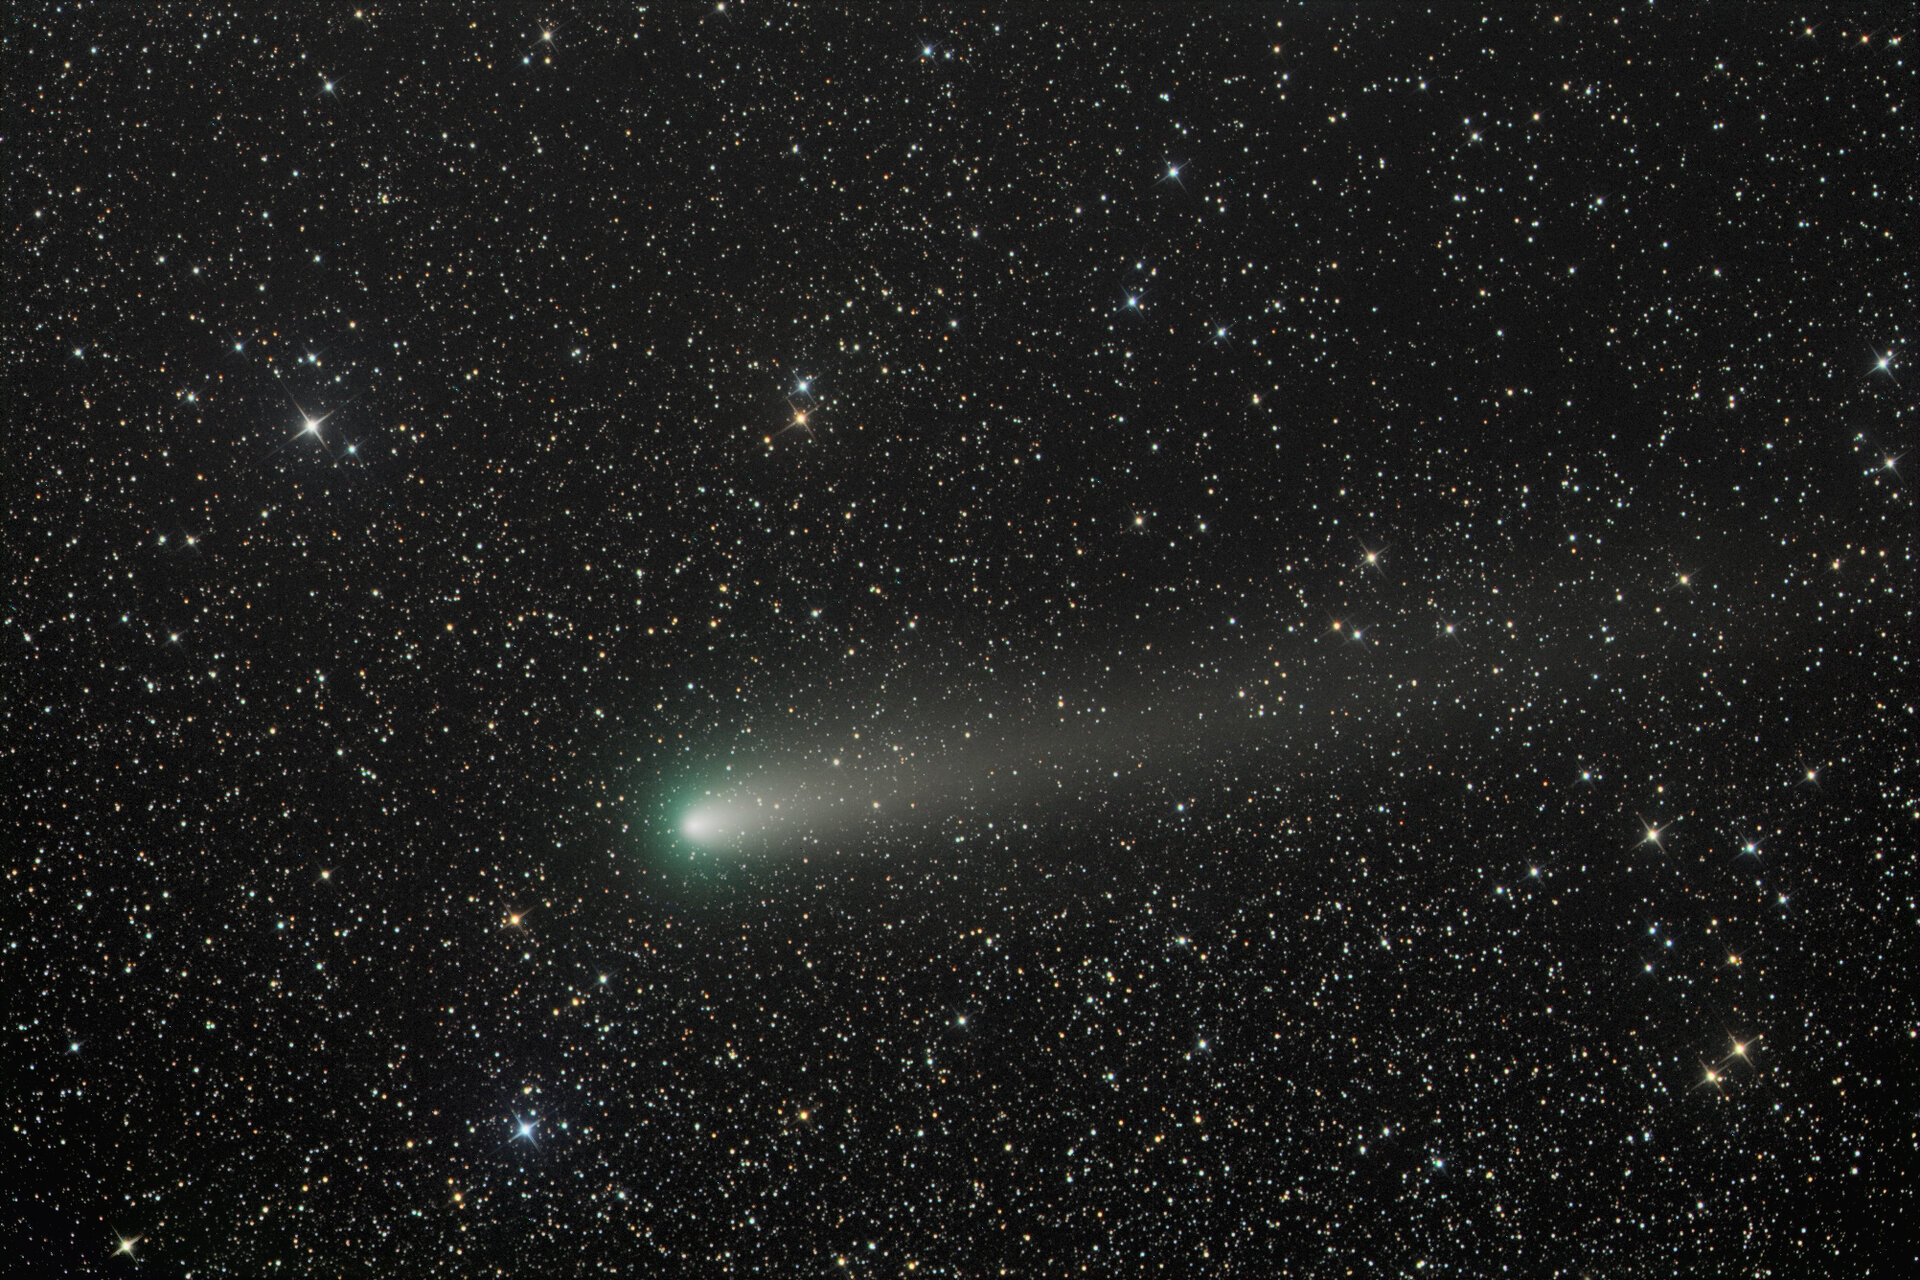 Comet 21P in cursory close approach